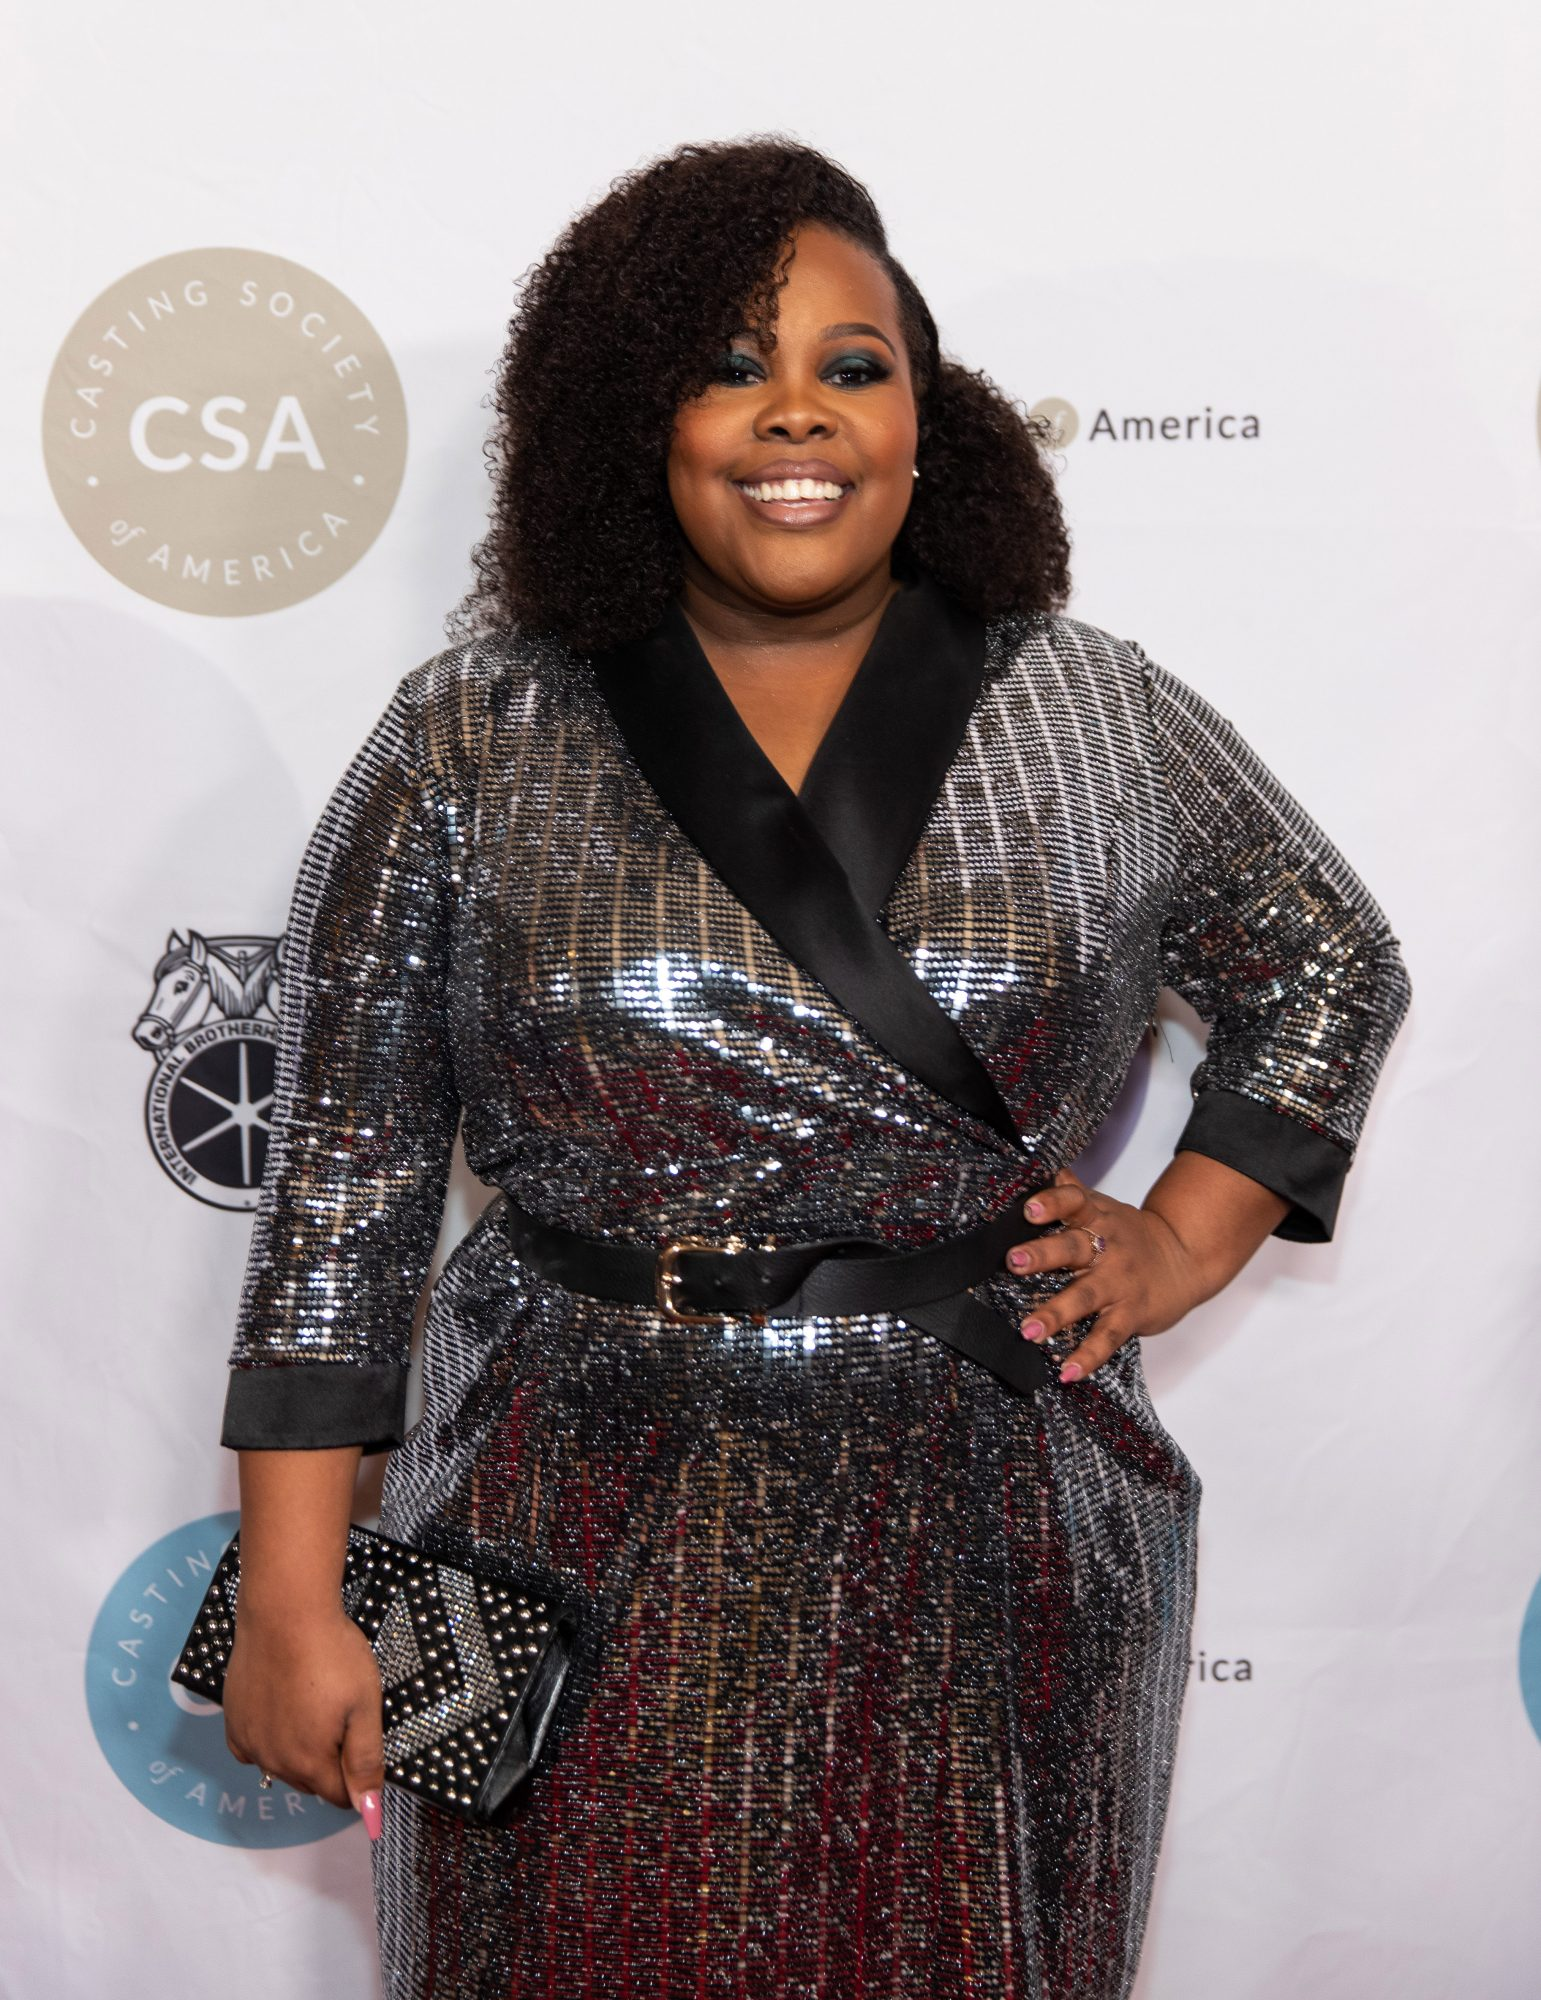 amber riley on the red carpet for the Casting Society of America's 34th Annual Artios Awards